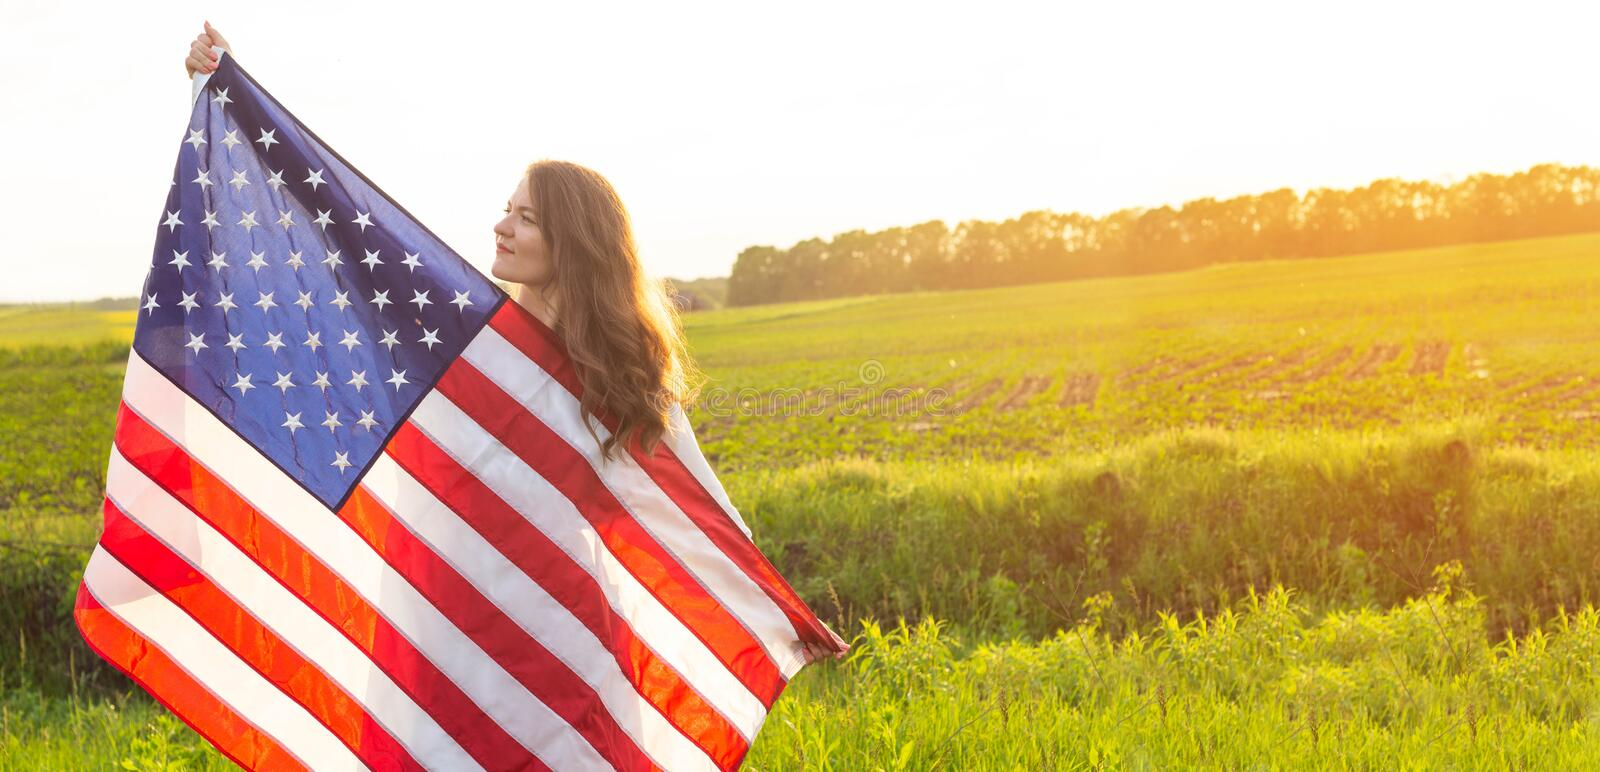 Happy women running in the field with American flag USA celebrate 4th of July royalty free stock photography